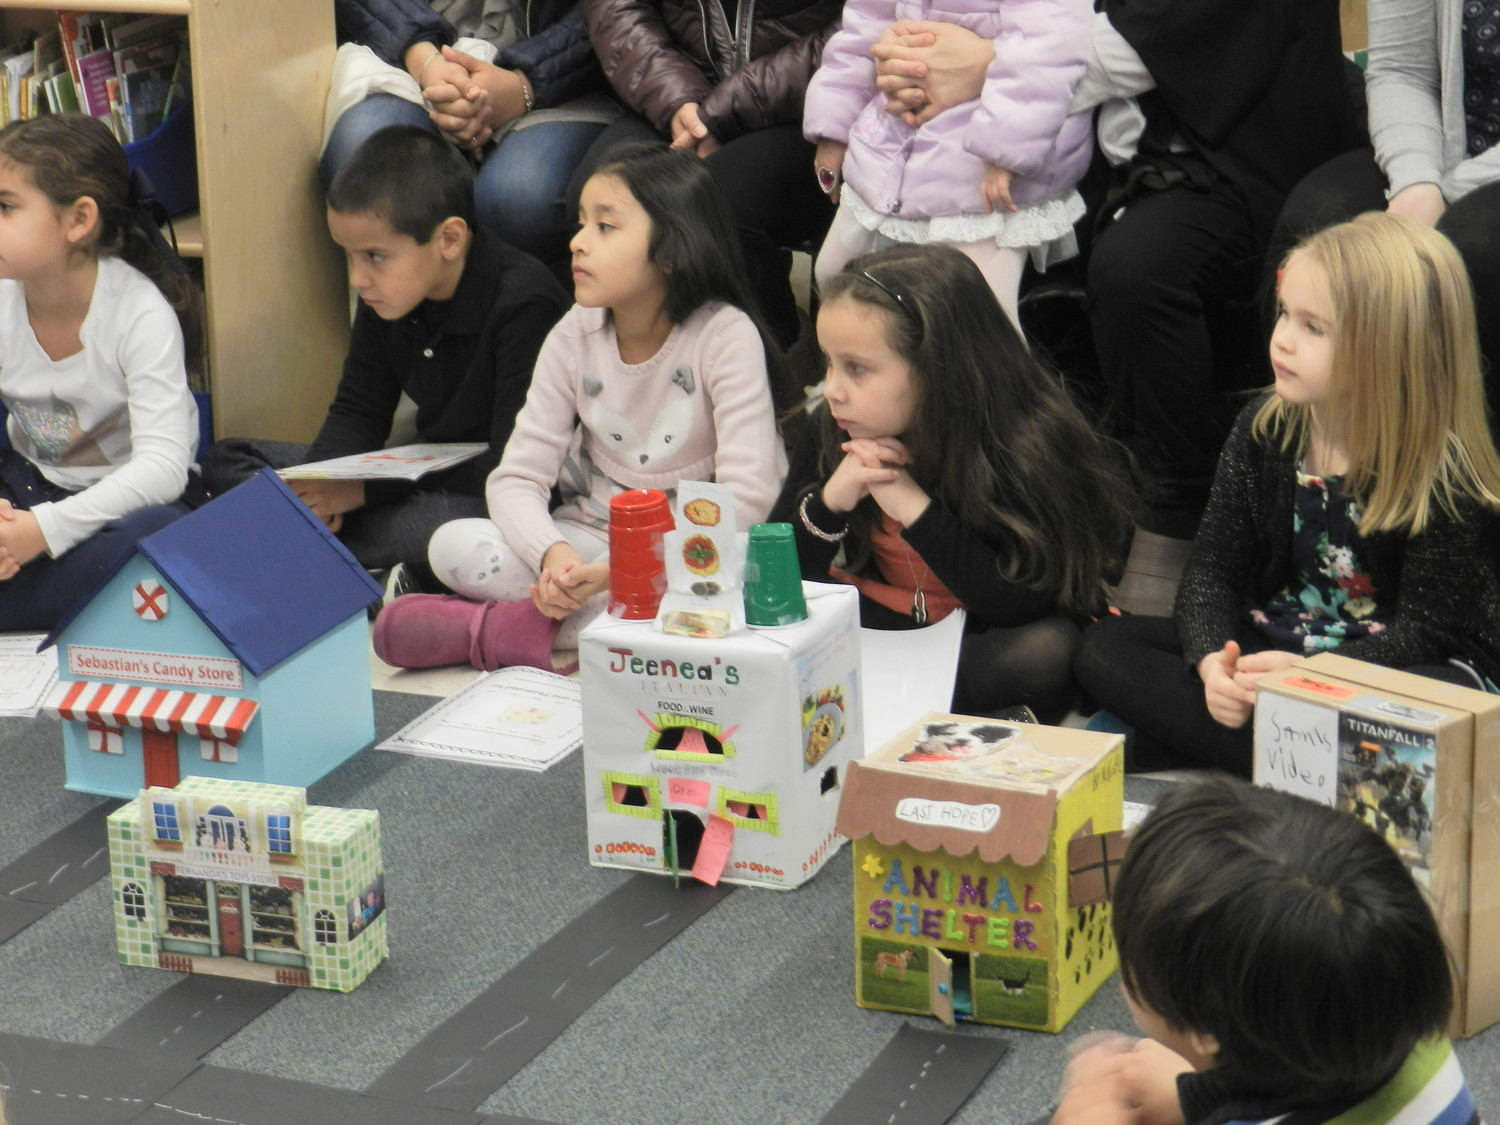 Erin Morley's students turned cardboard boxes into commercial buildings, including a candy shop, a toy store, and an animal shelter, to construct an urban community.